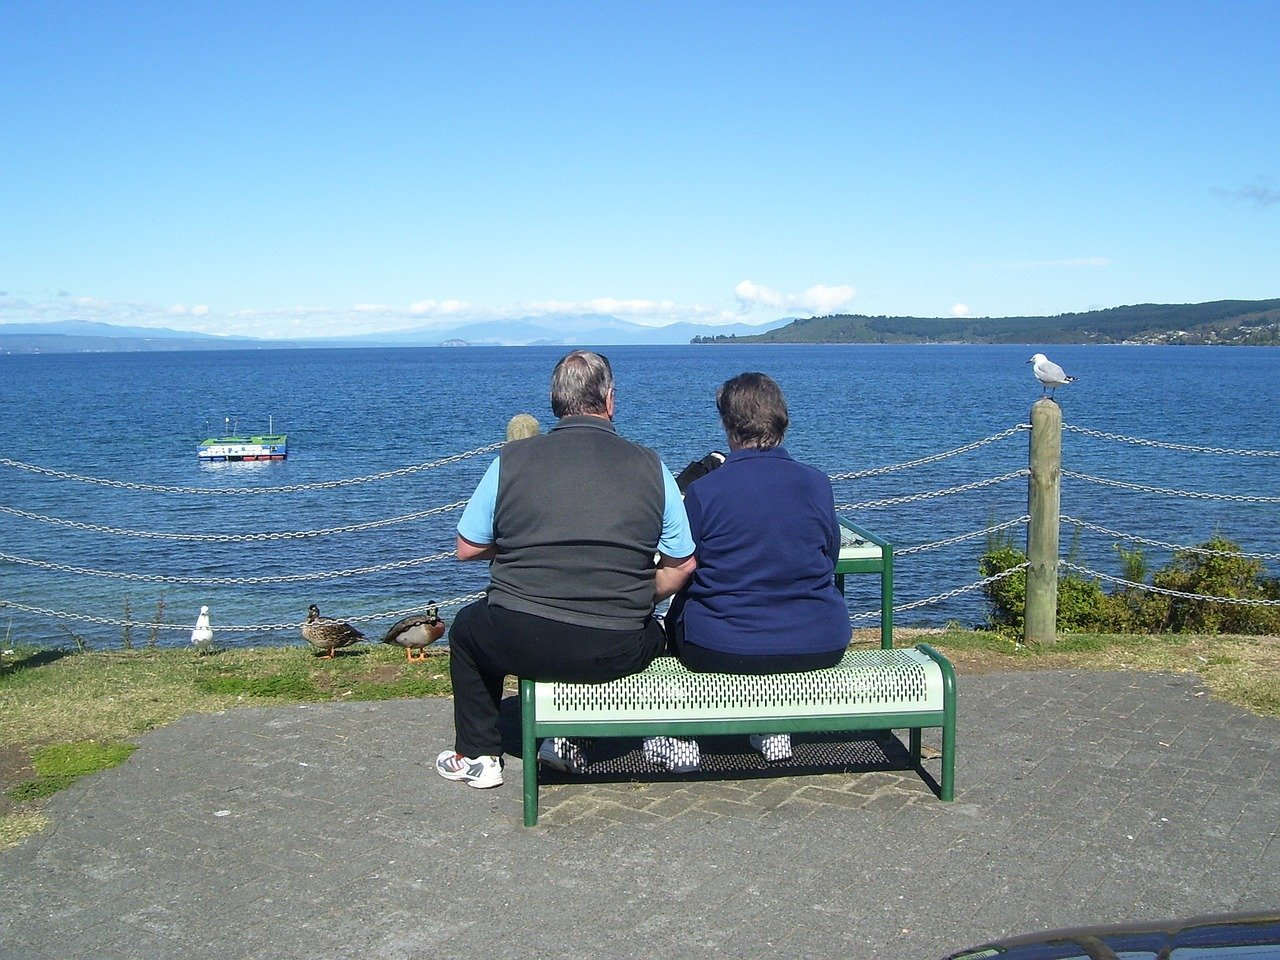 Top Tourists Attraction Sites in New Zealand